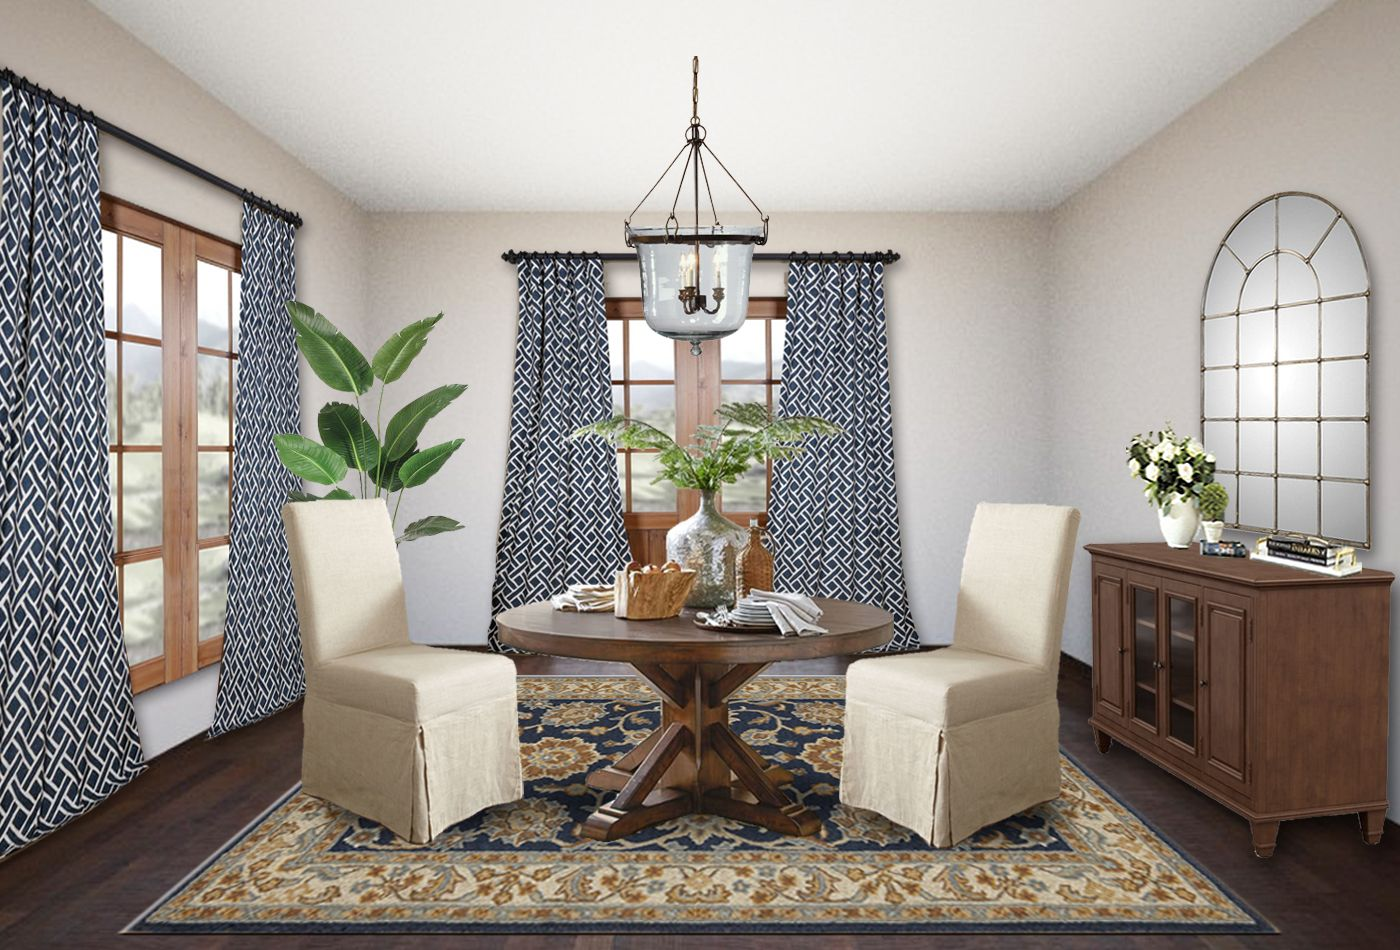 Rustic dining room online interior design with Pottery ...